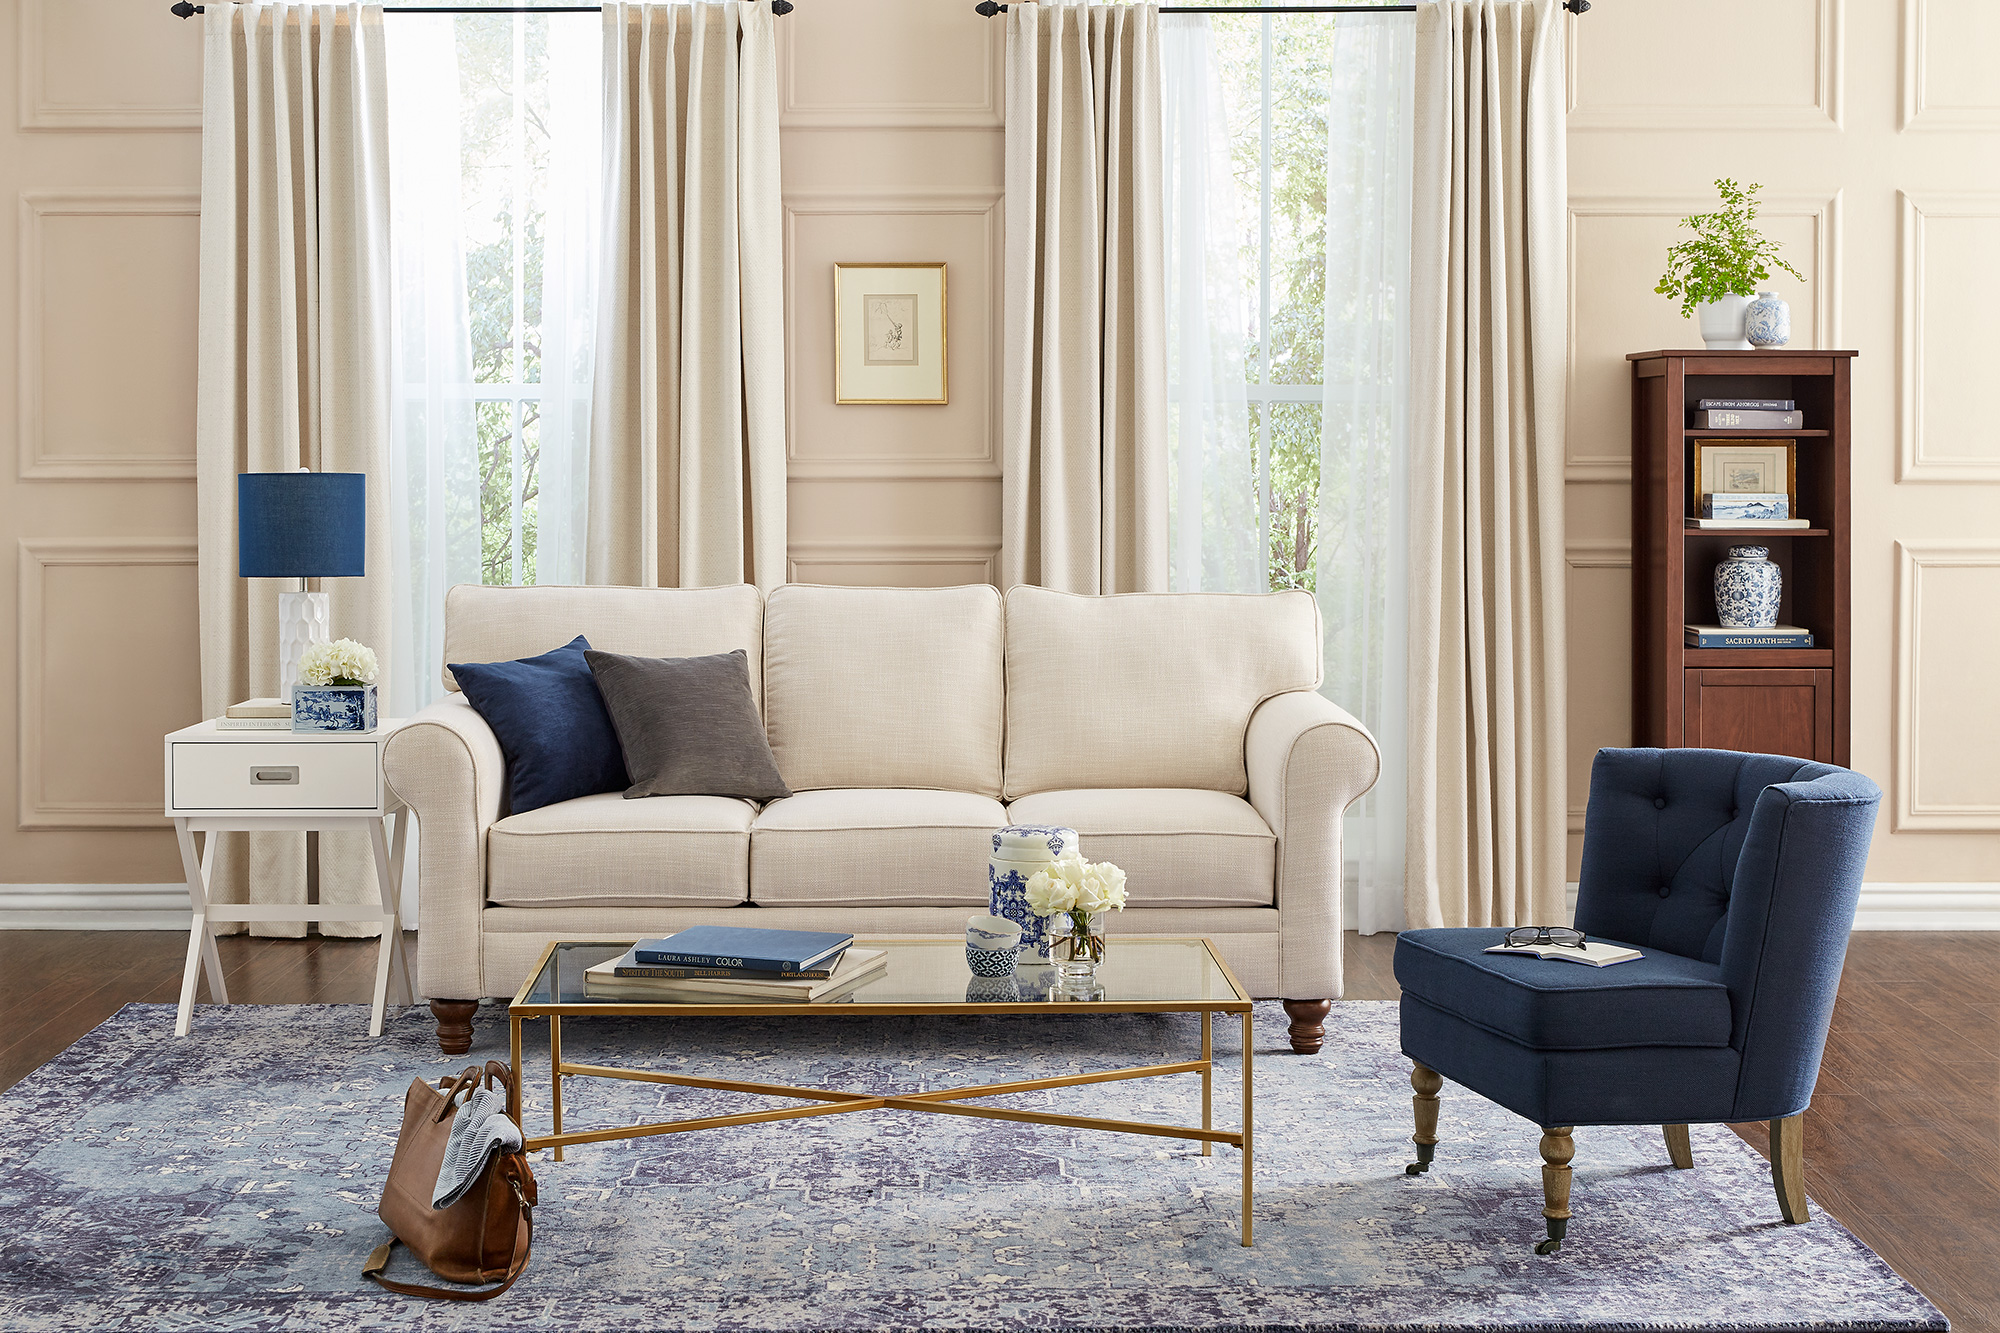 spectacular end table off white accent tables ravenna home living target scalloped launches its own furnishings collection take peek the affordable items solid wood sofa copper